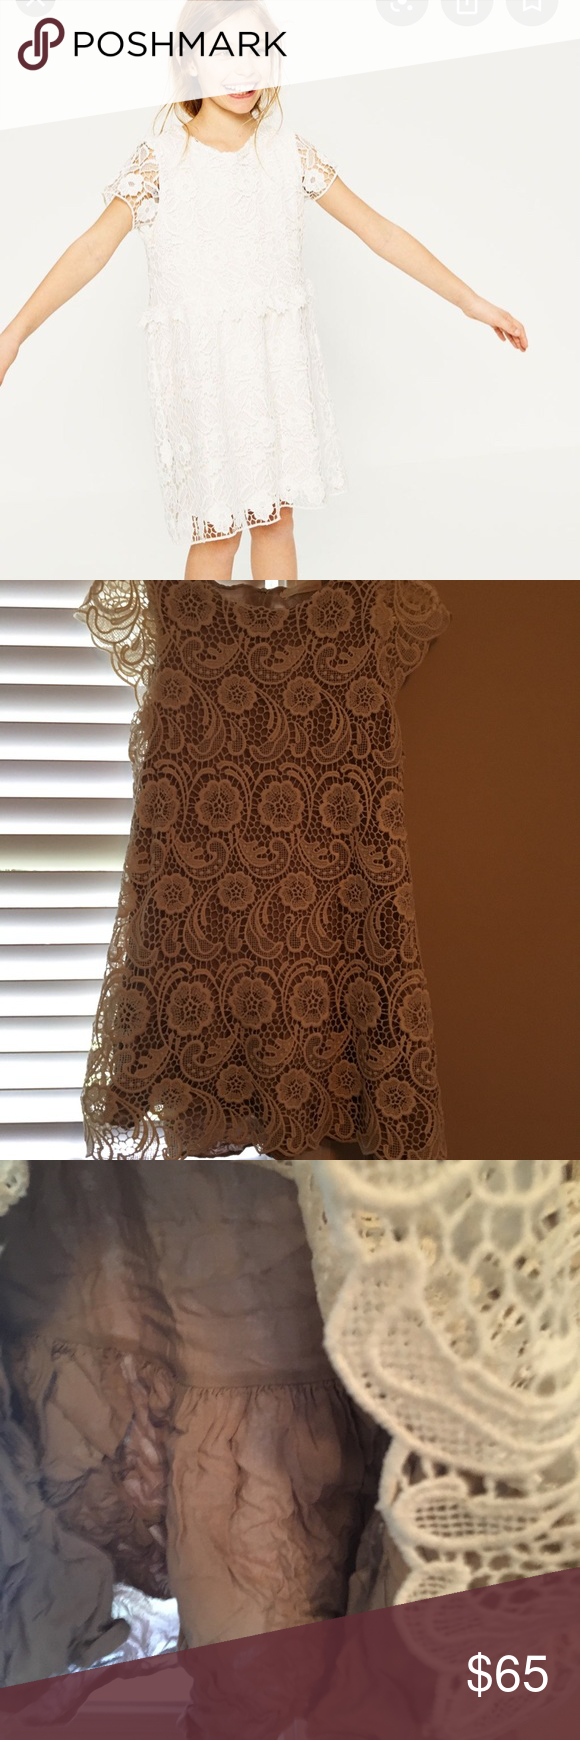 Zara Crotchet Dress NWOT.  Will need to be ironed in the back.  No flaws or holes or smells.  Working zipper in the back. Zara Dresses Casual